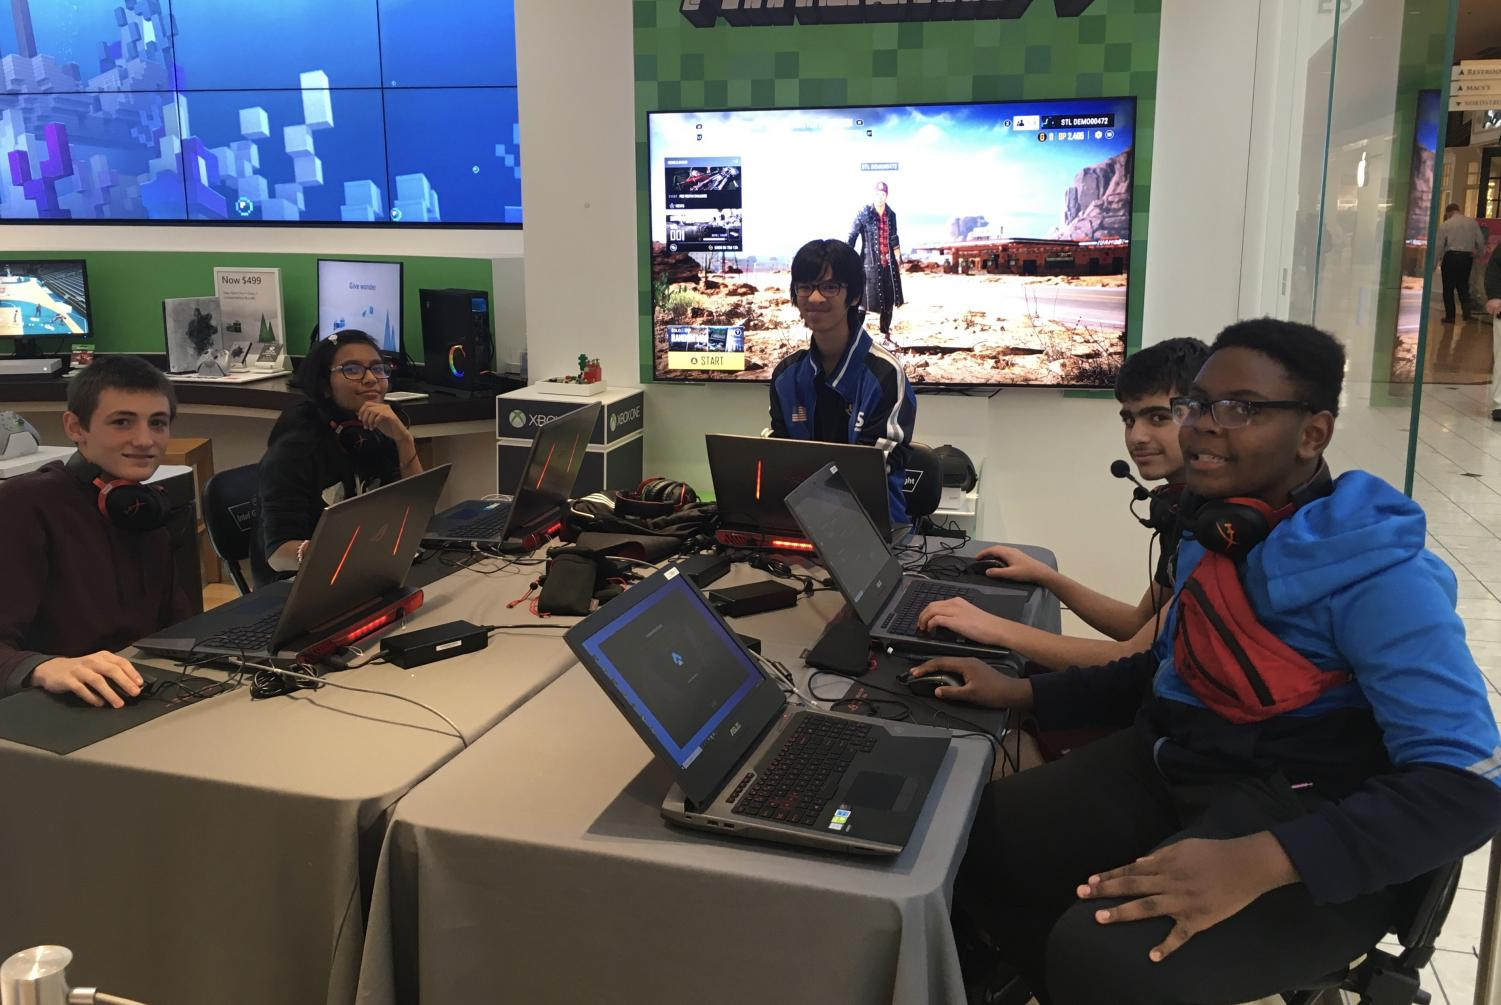 """Stemler,, Bucker, Birka, Aquino, and Henley compete in the Microsoft tournament. """"Playing as an entire team of 5 rather than soloq is a unique challenge, [but] I find it way more fun, and after your teammate makes a really good play, being able to walk up to them in real life and give them a high five makes all the difference,"""" said Buckner."""